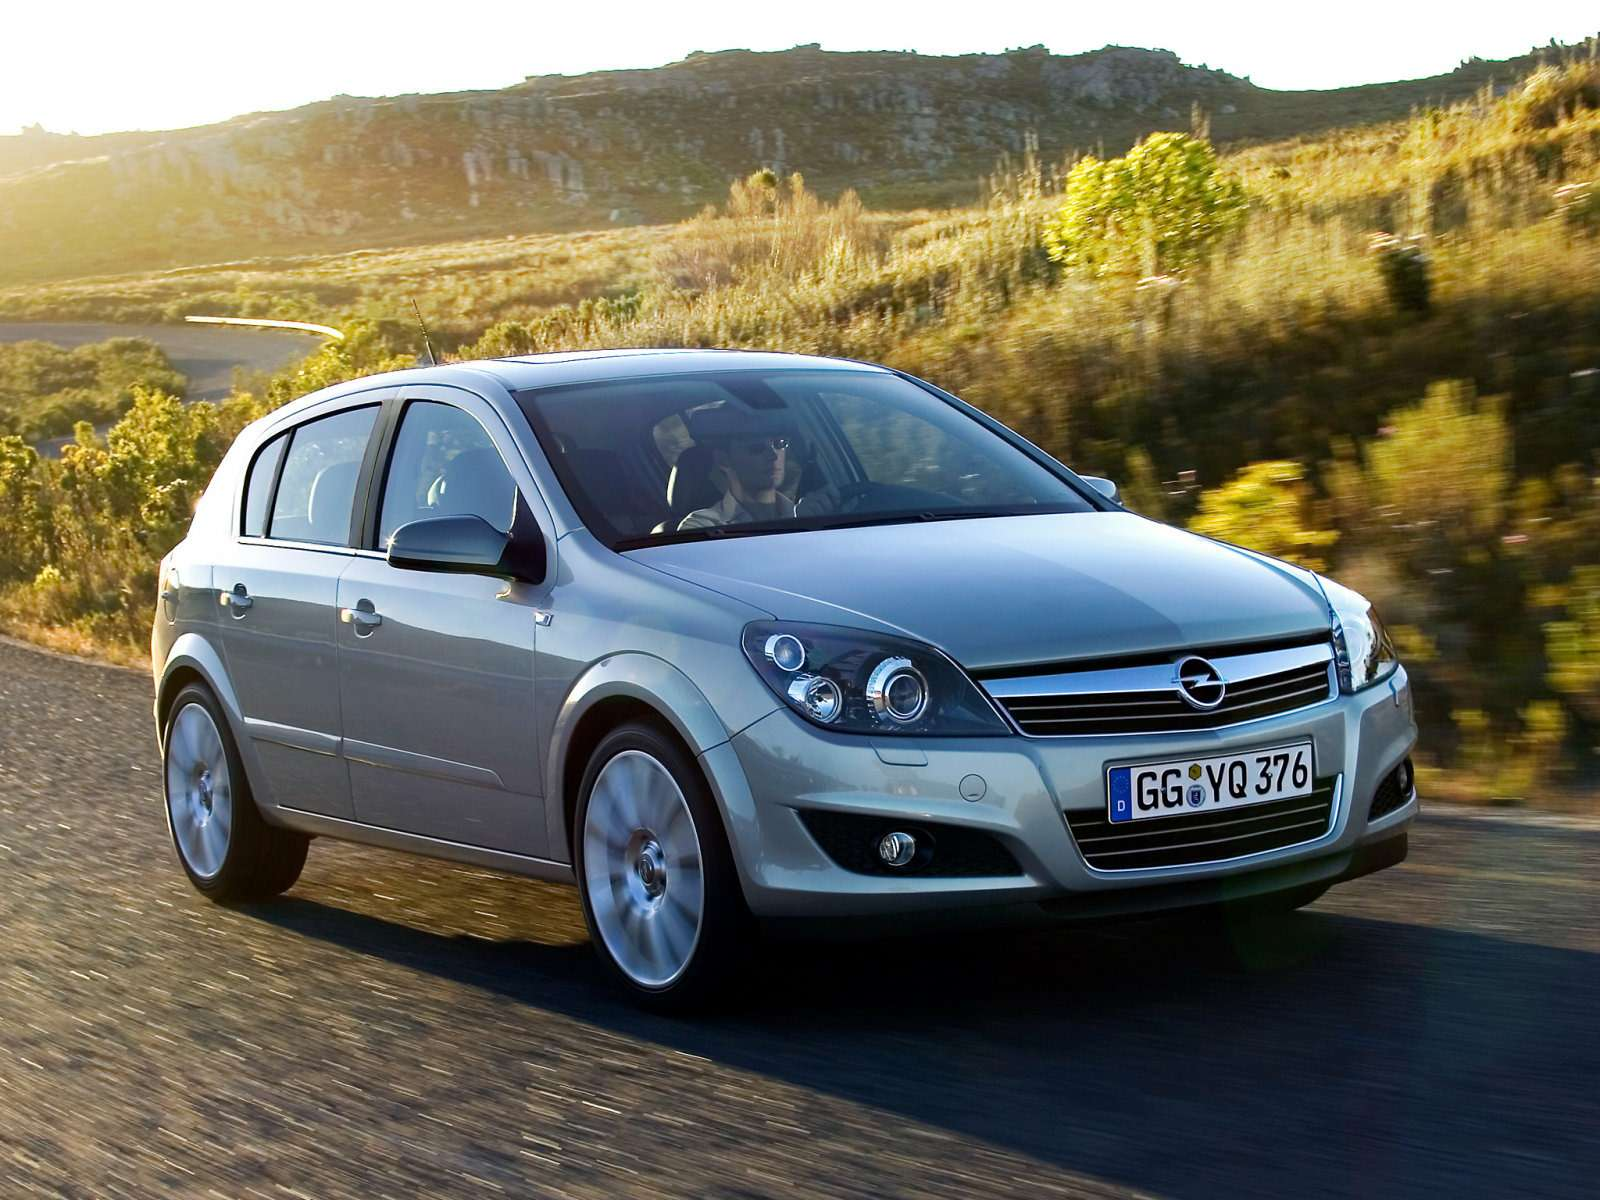 Opel_Astra_Hatchback 5 door_2007